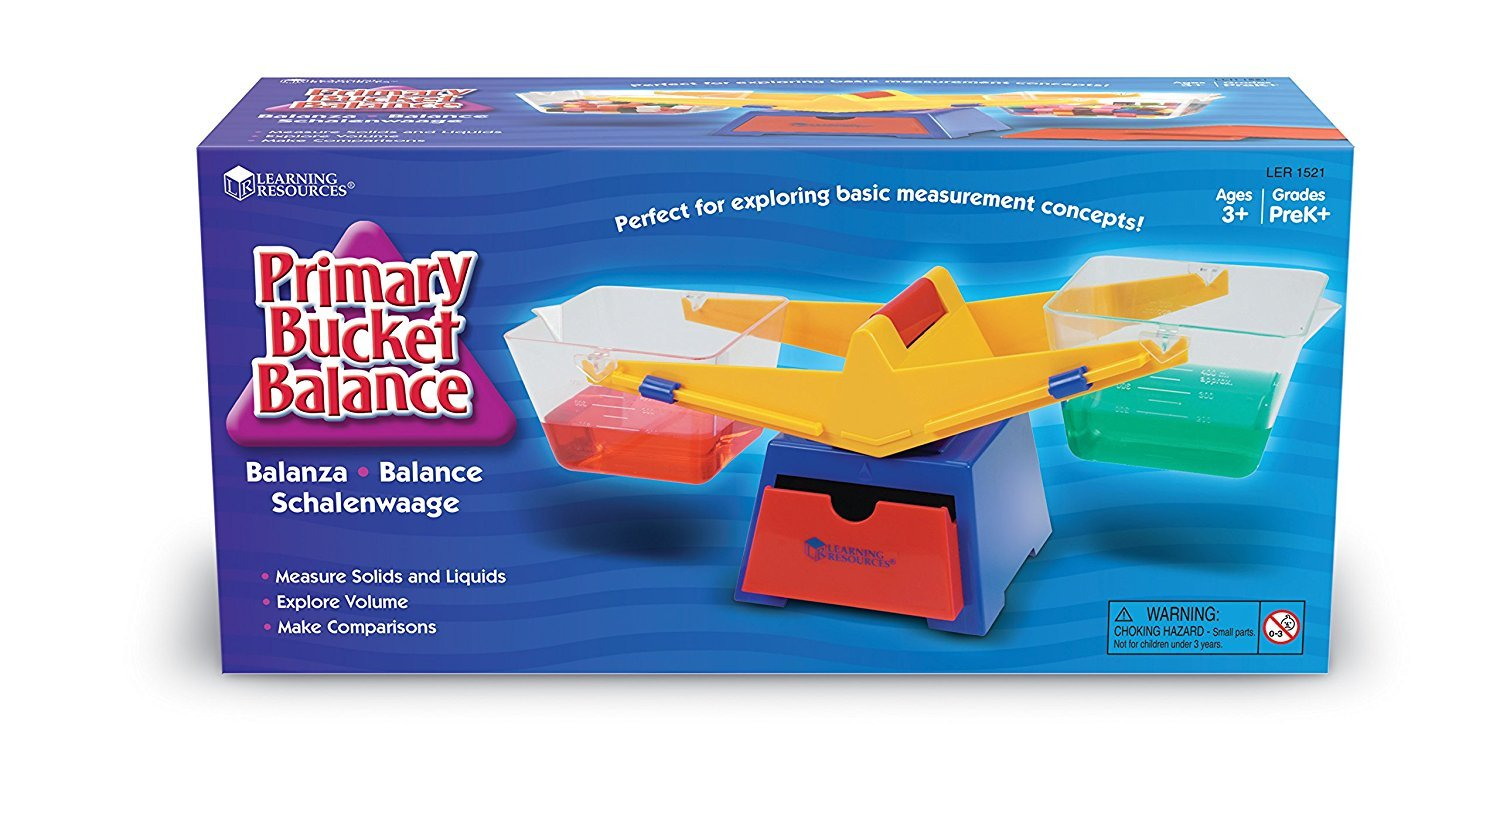 Learning Resources Primary Bucket Balance Teaching Scale, Science/Math, Classroom Scale, Science for Kids, Ages 3+